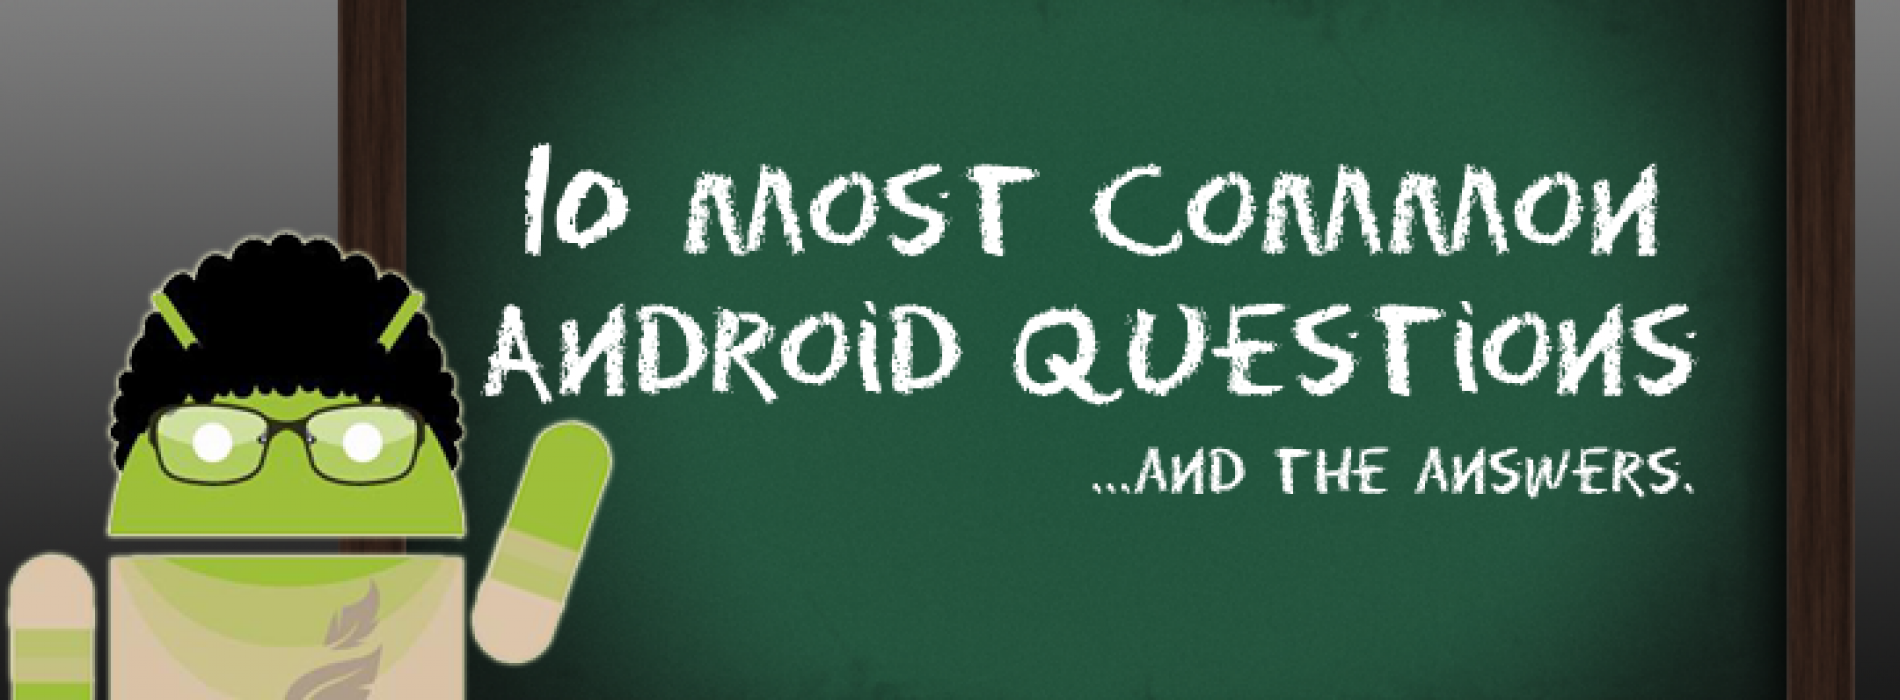 10 most common Android questions…and the answers